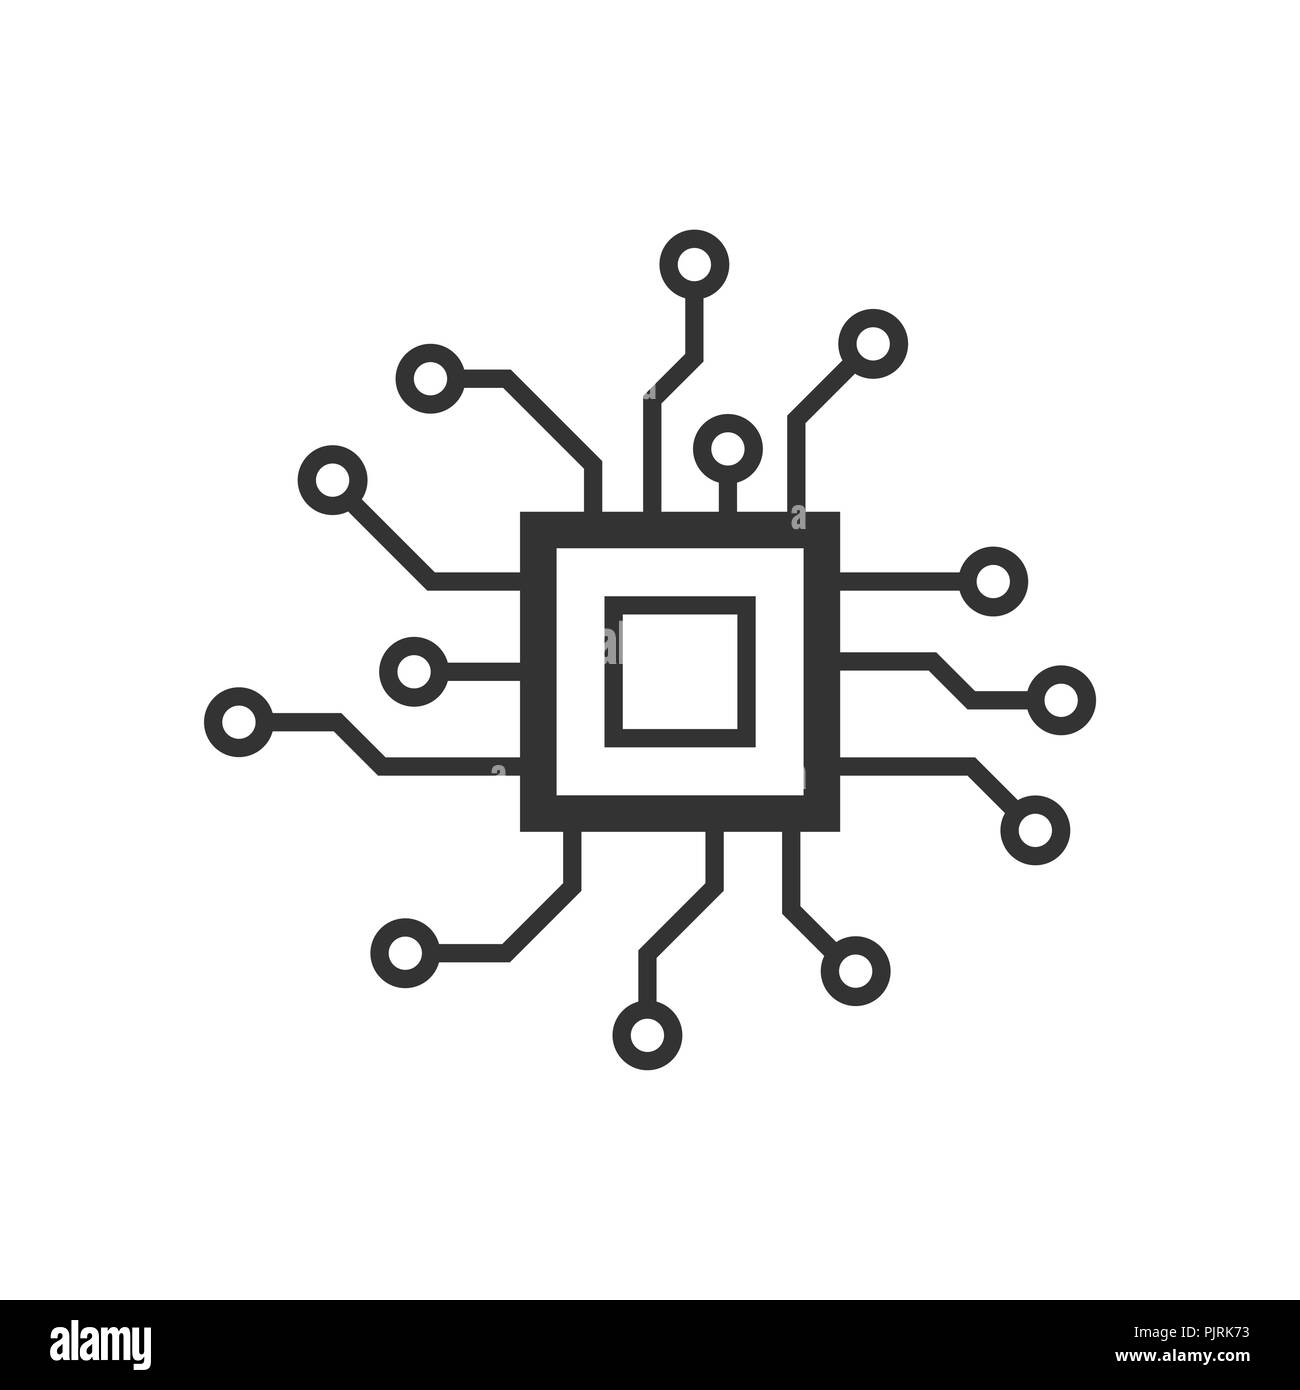 Printed Circuit Board Black and White Stock s & Page 2